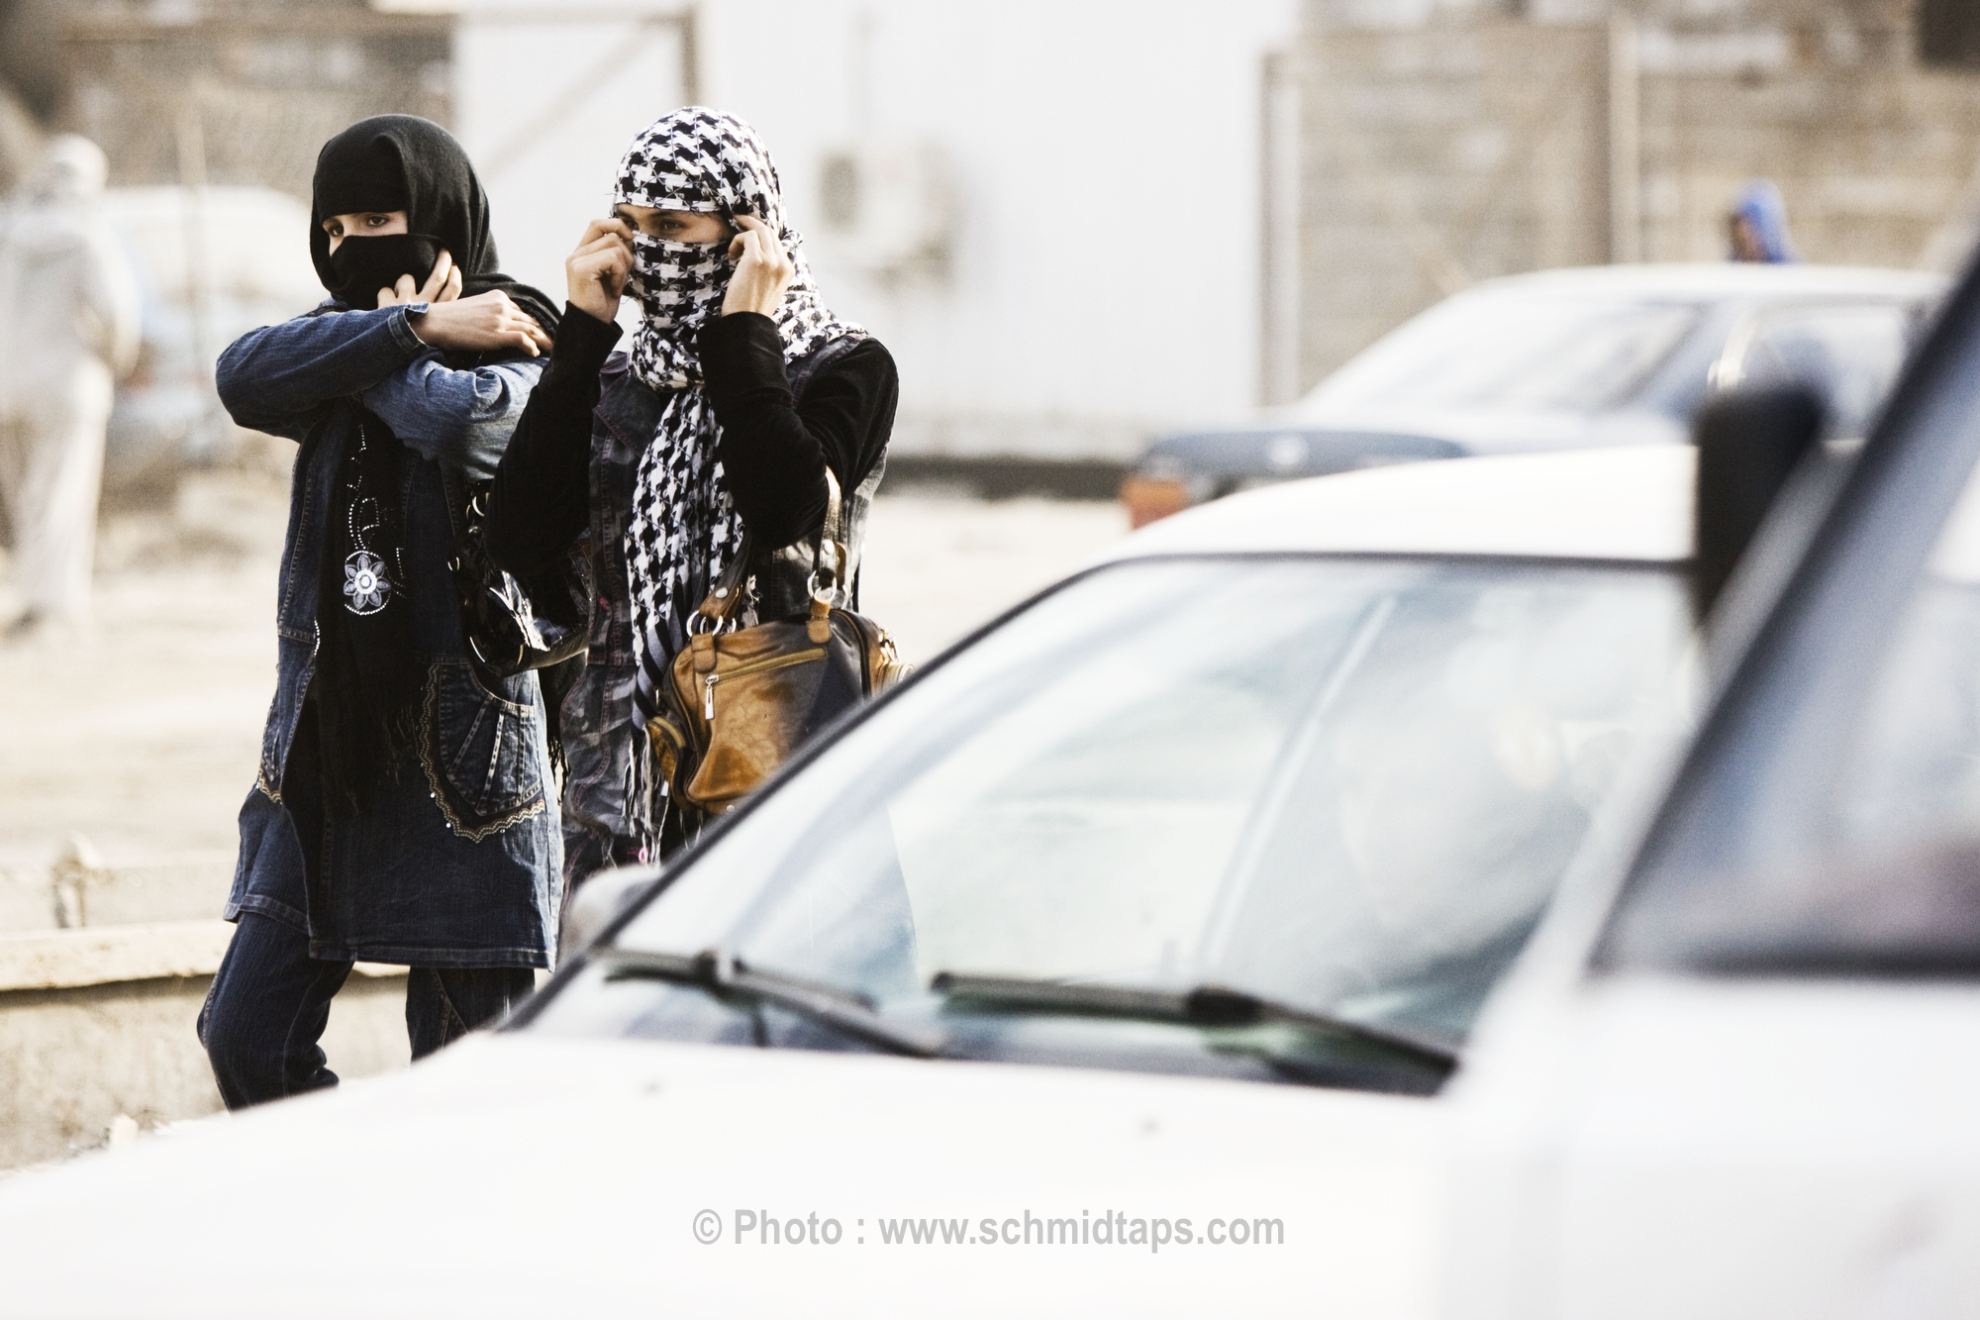 Young fashionable women walking the streets of Kabul. Photo: Lars Schmidt, 2010-'13.